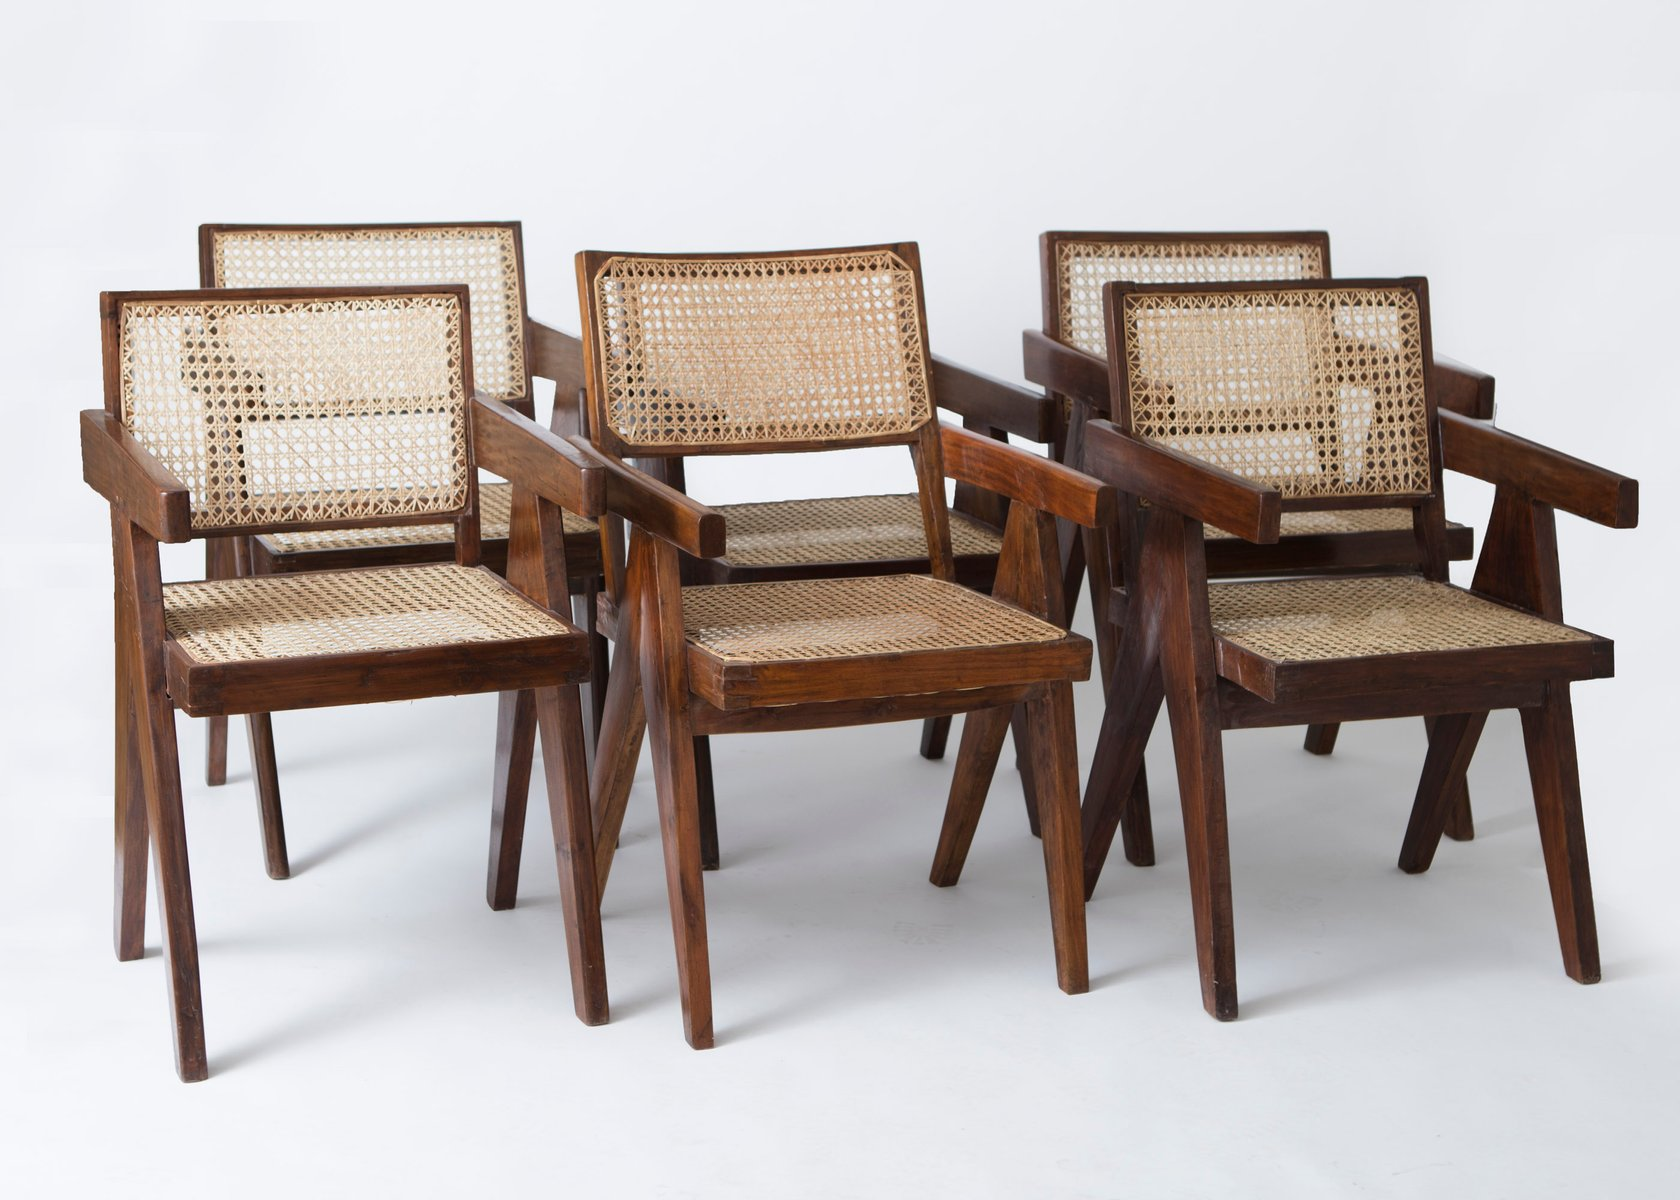 fice Cane Chairs by Pierre Jeanneret Set of 6 for sale at Pamono